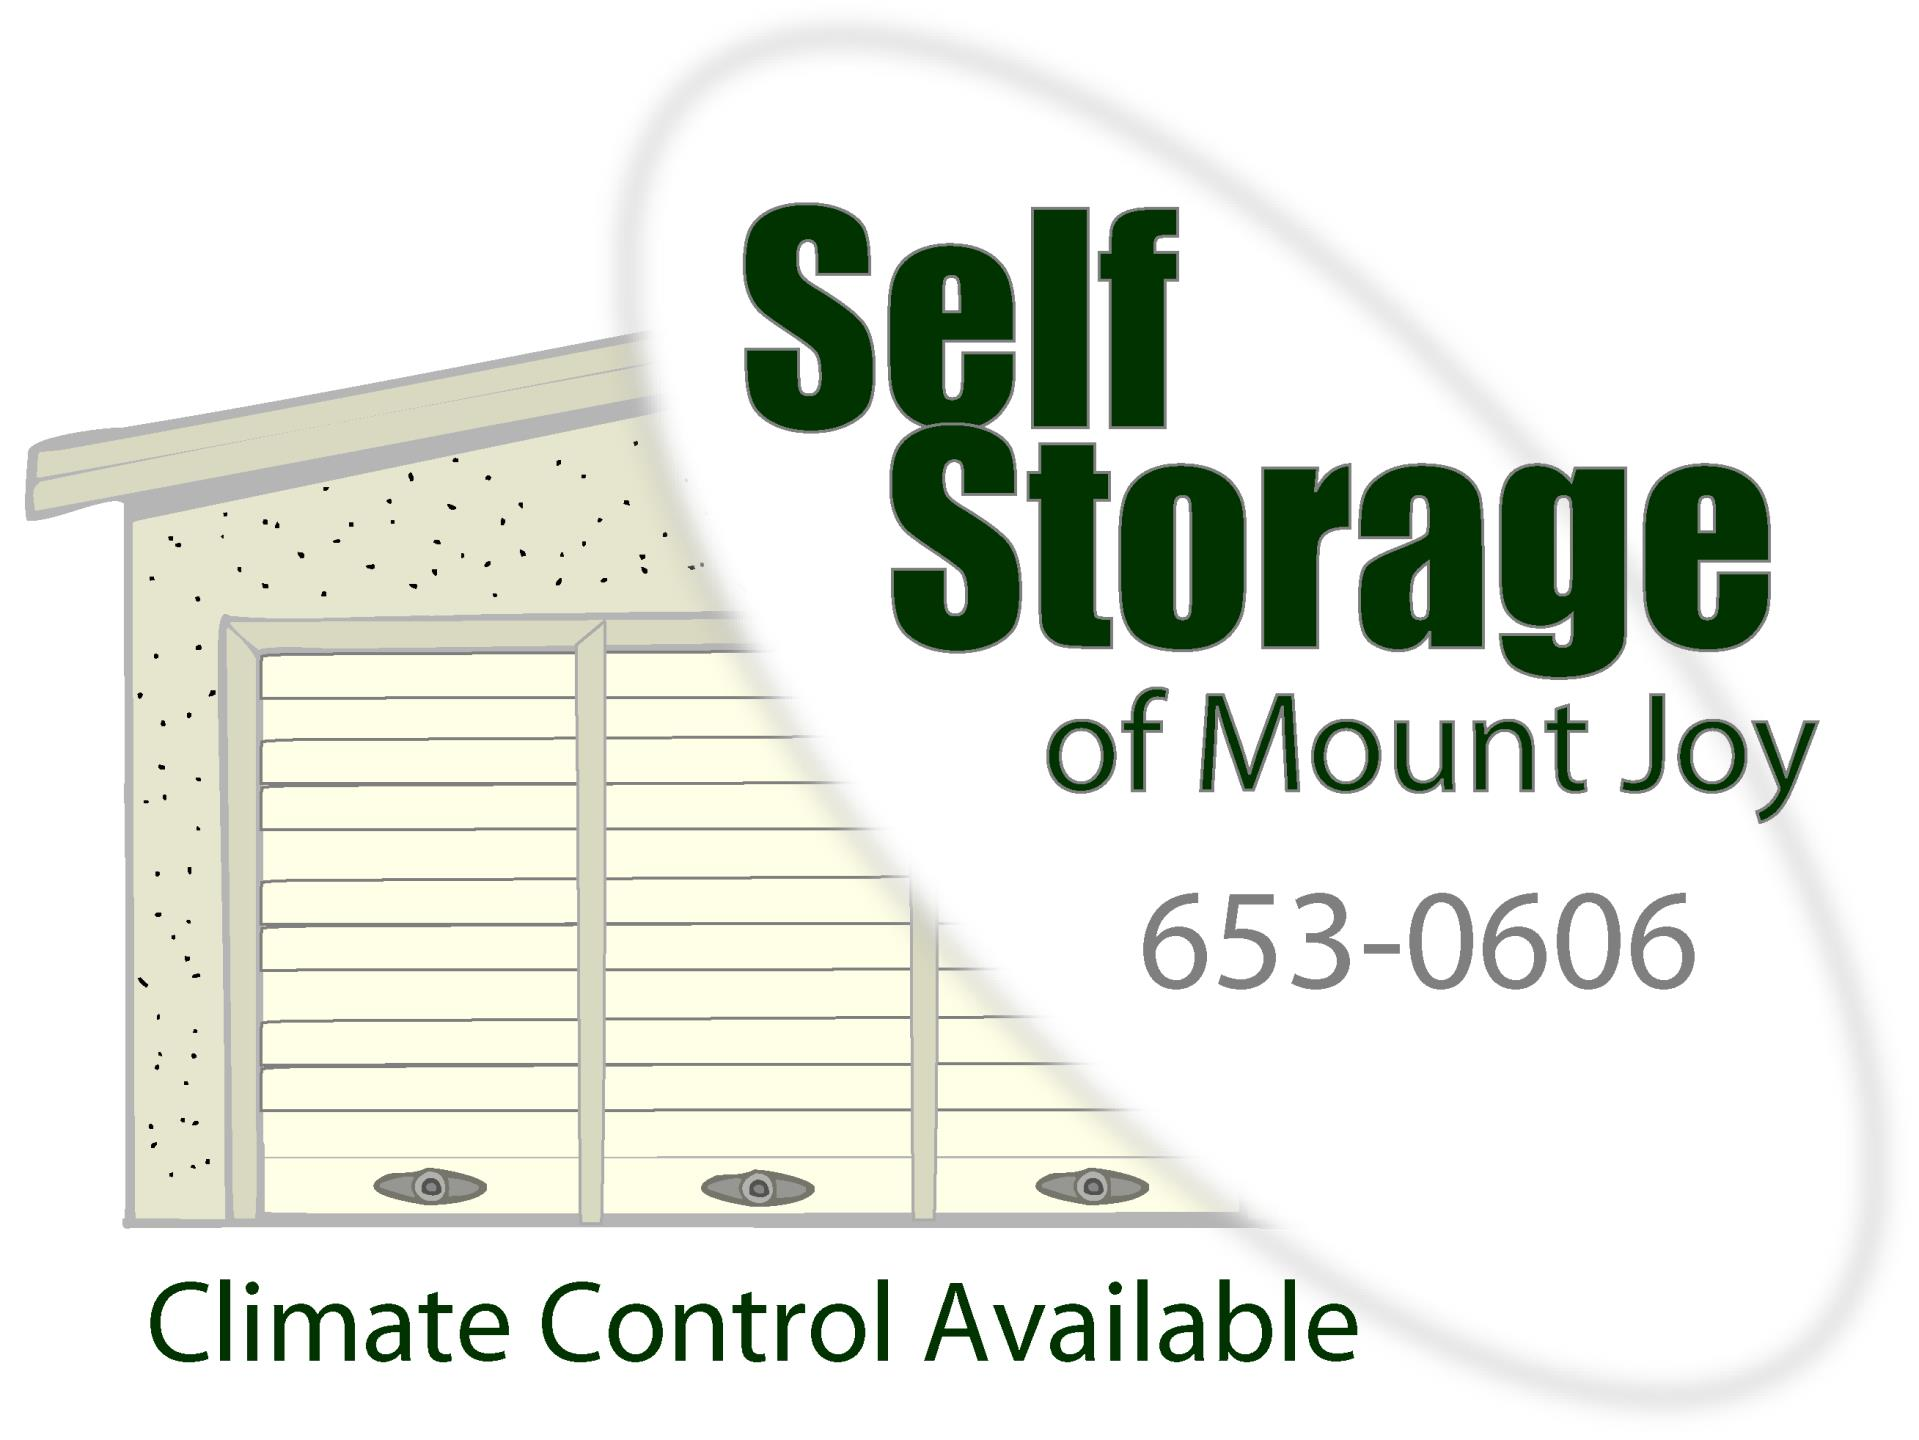 Self Storage Of Mount Joy Mount Joy Pennsylvania Pa